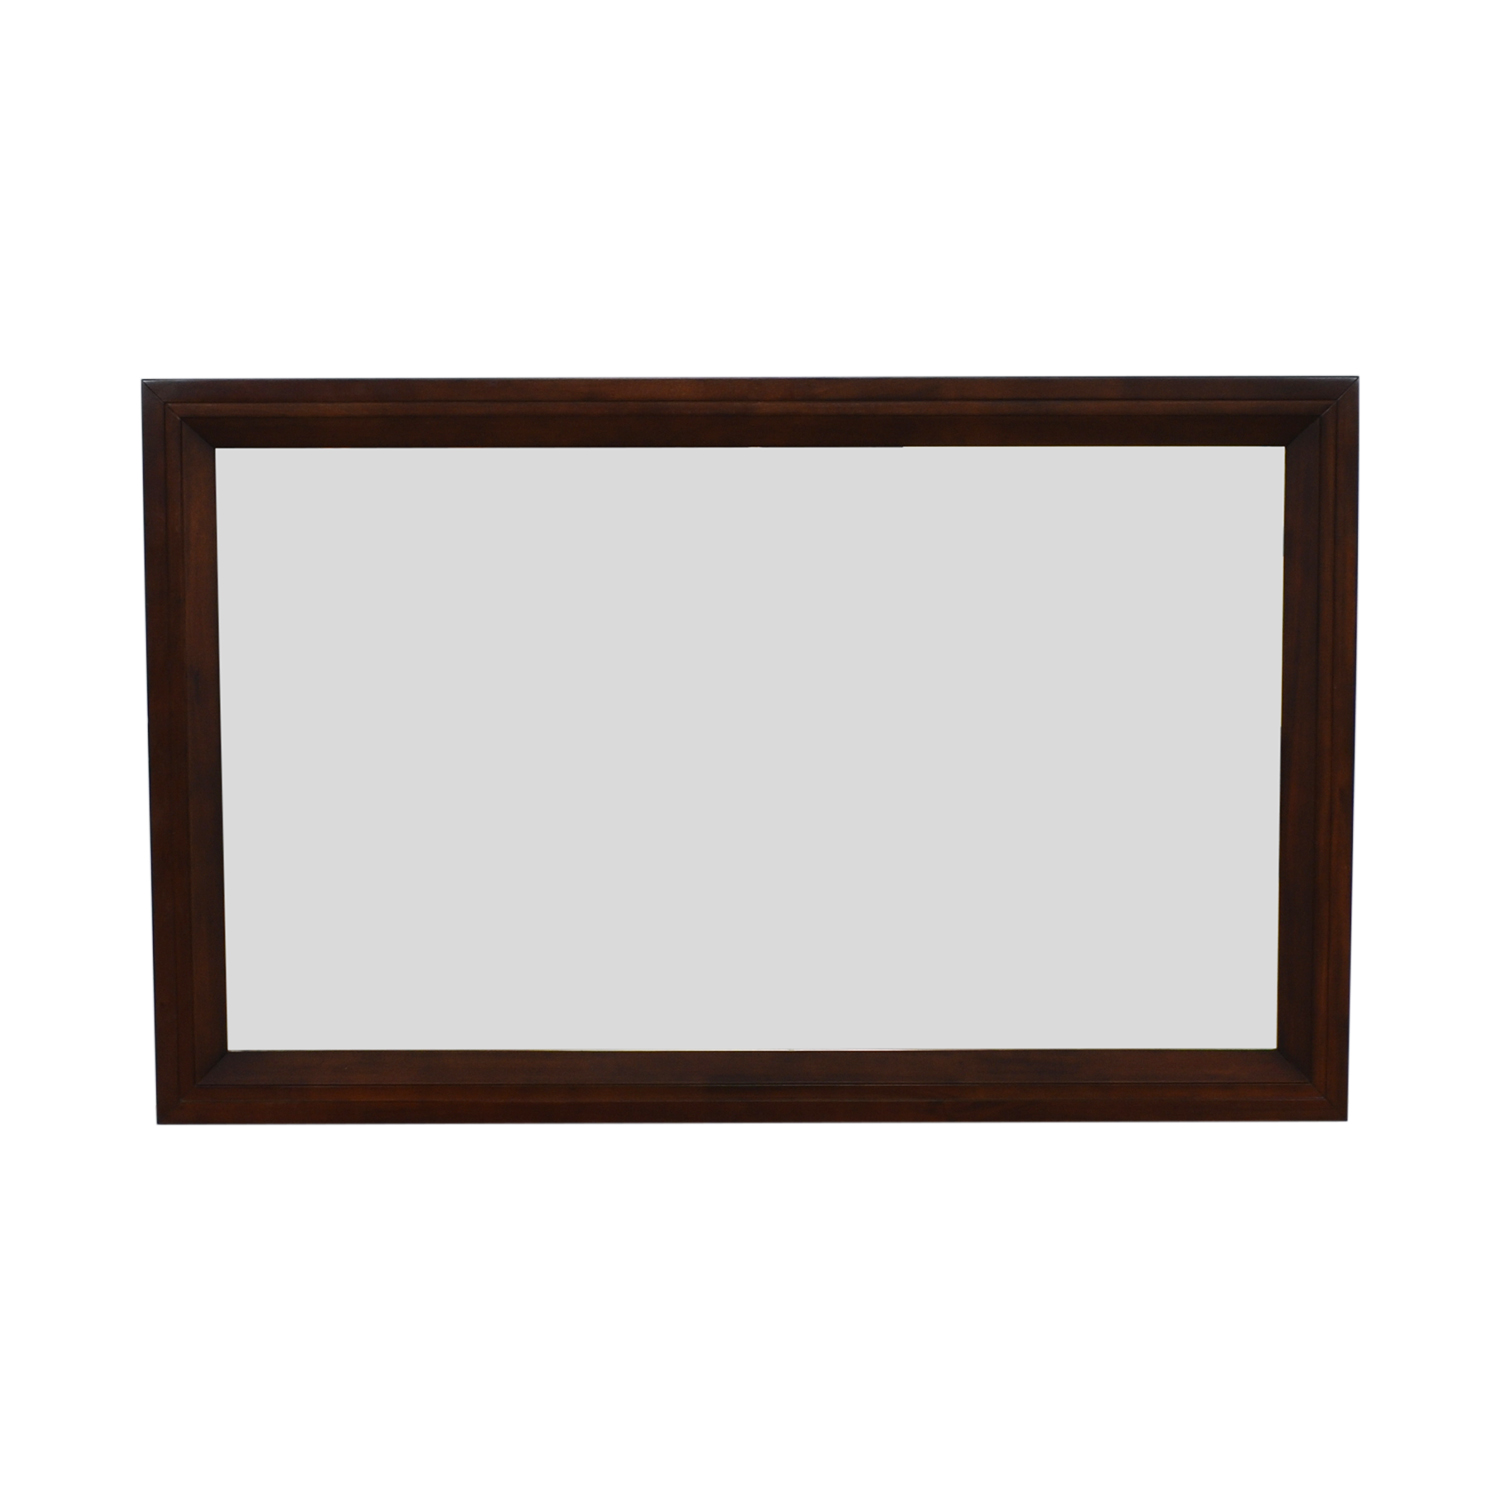 Casana Furniture Casana Vista Landscape Mirror coupon